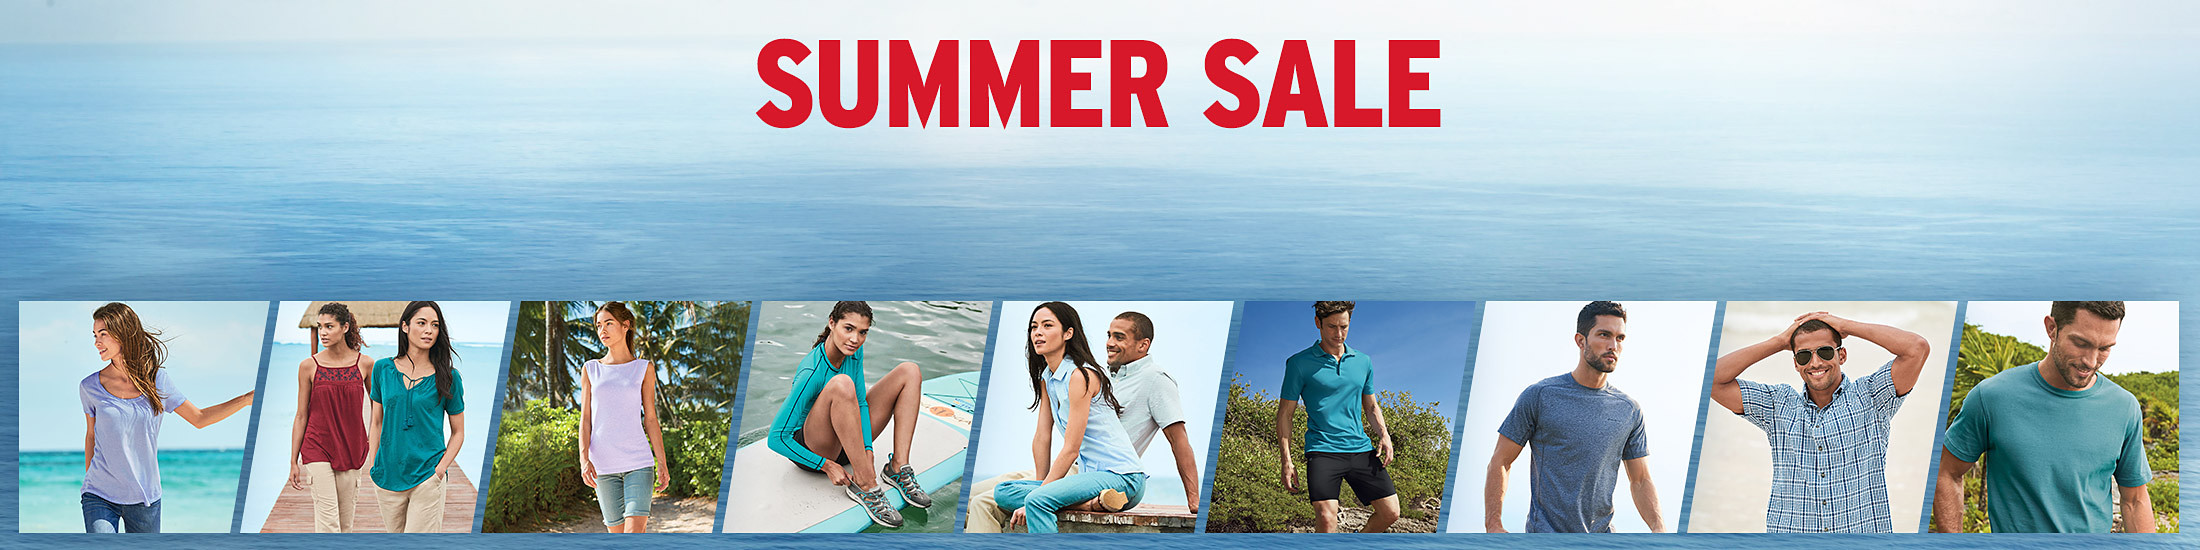 Different images of summer sale tops, shorts, shirts, and pants